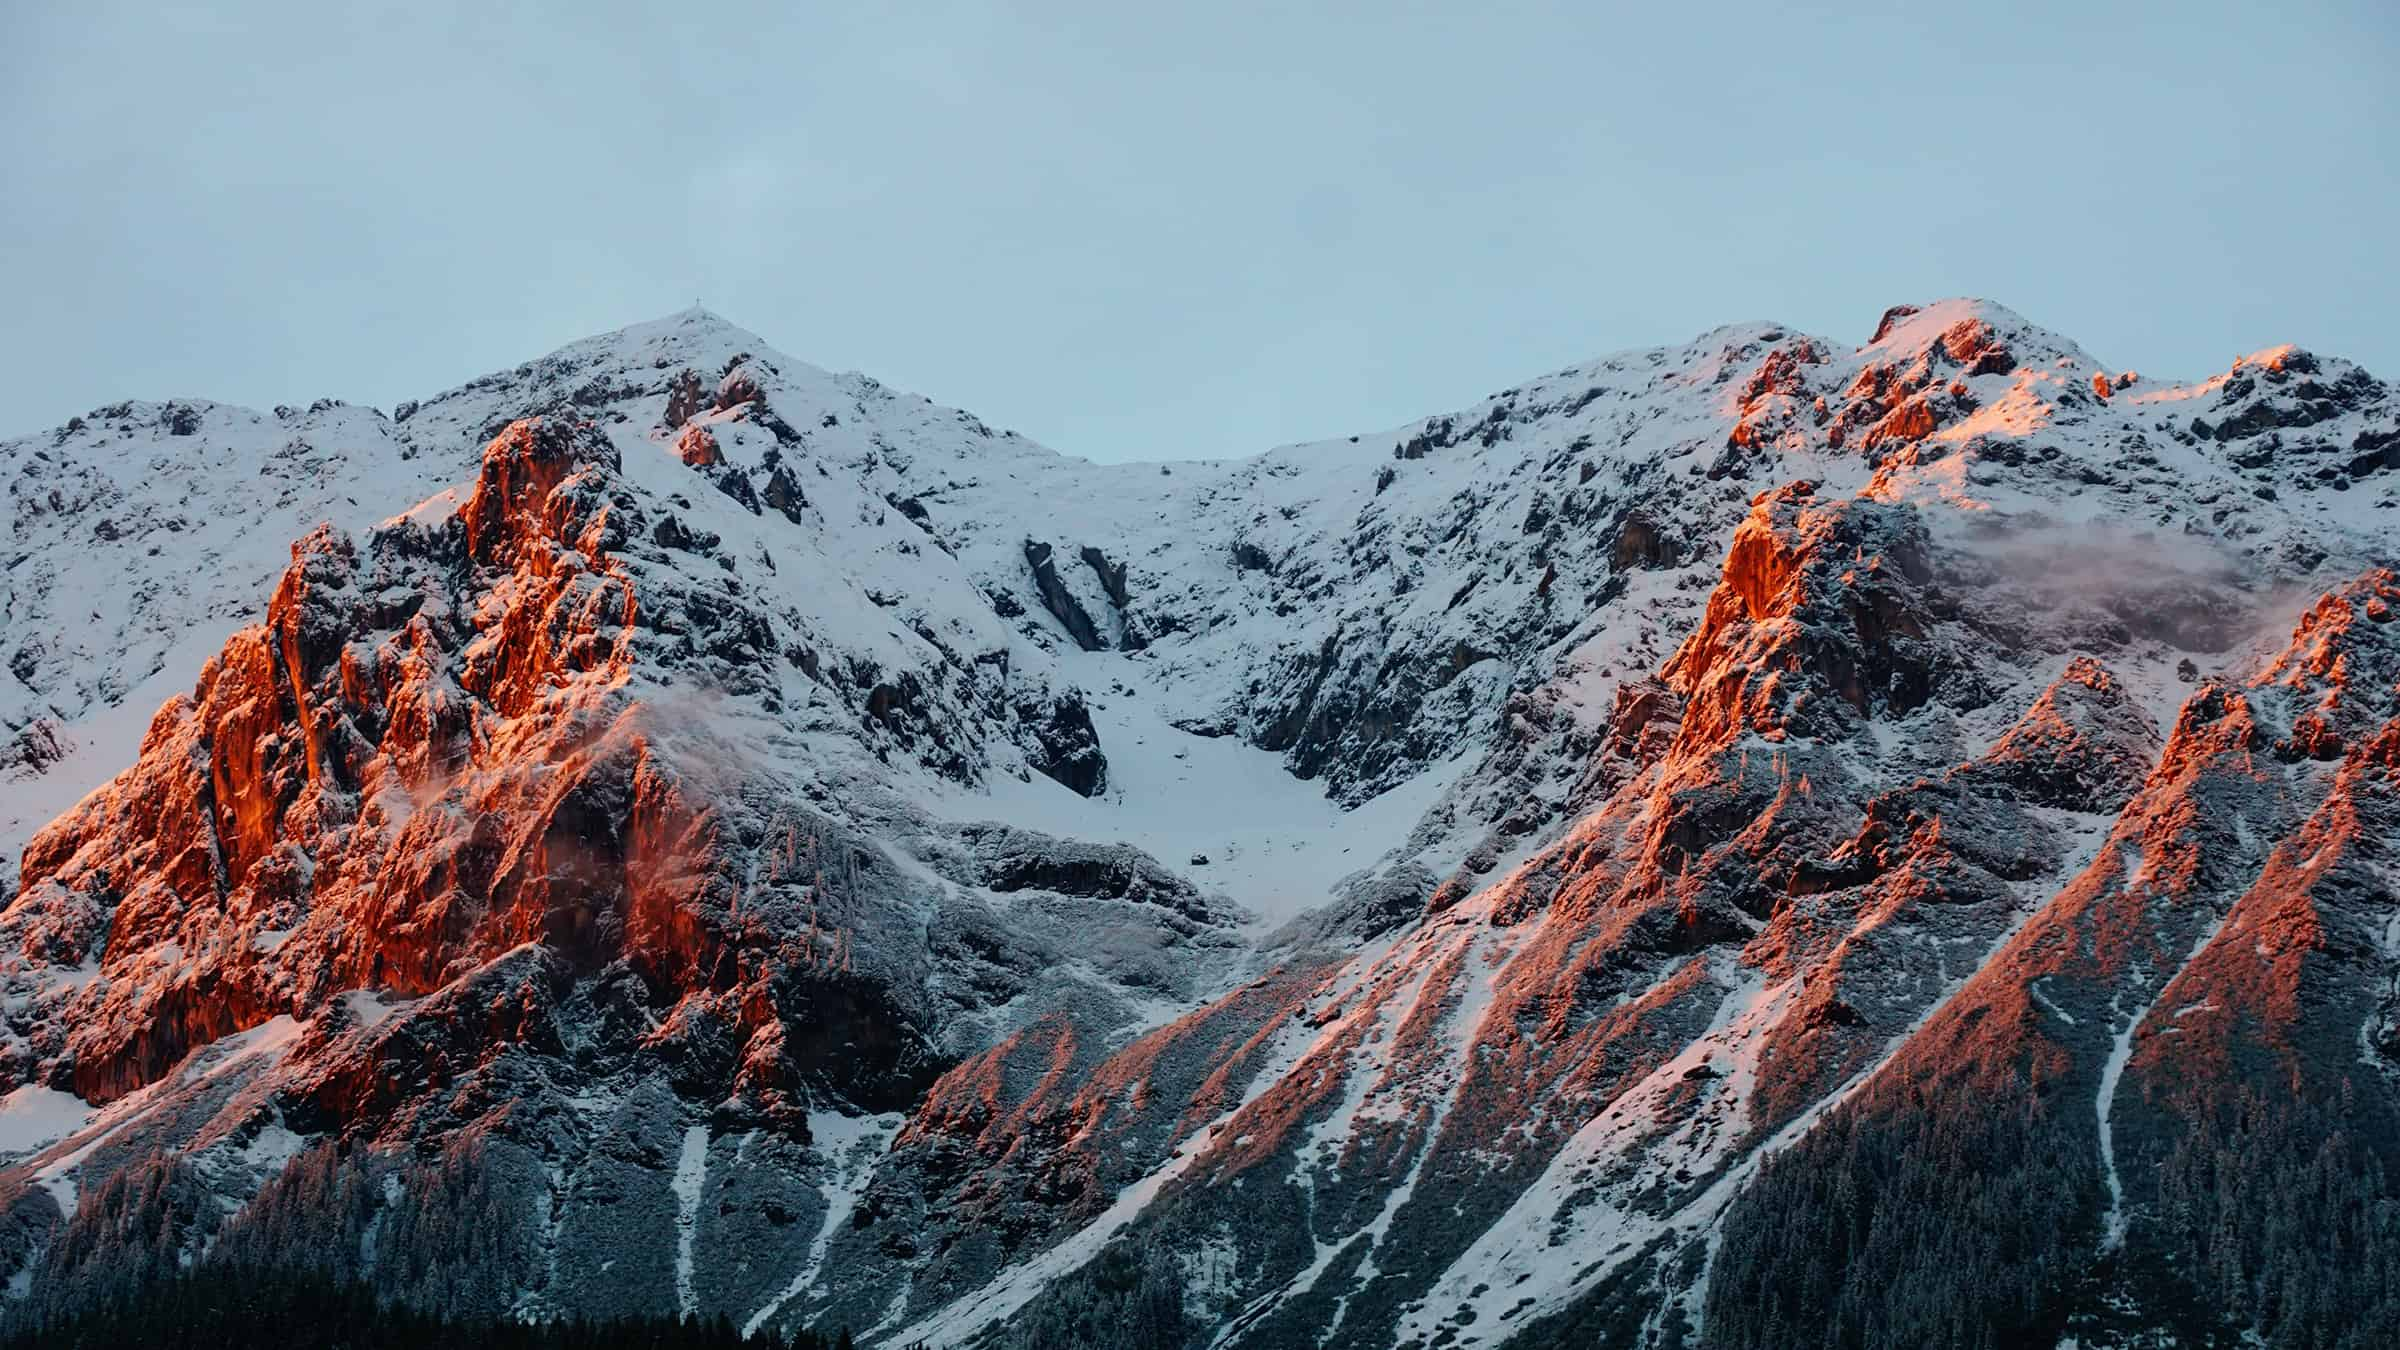 Scenic image of a mountain at dusk